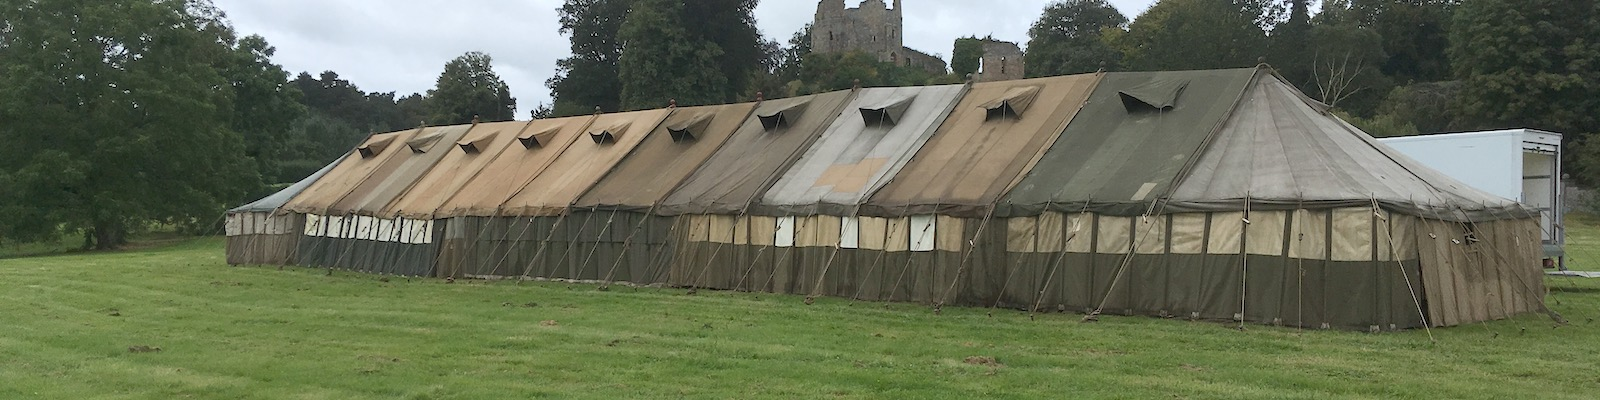 Army marquee 108' long